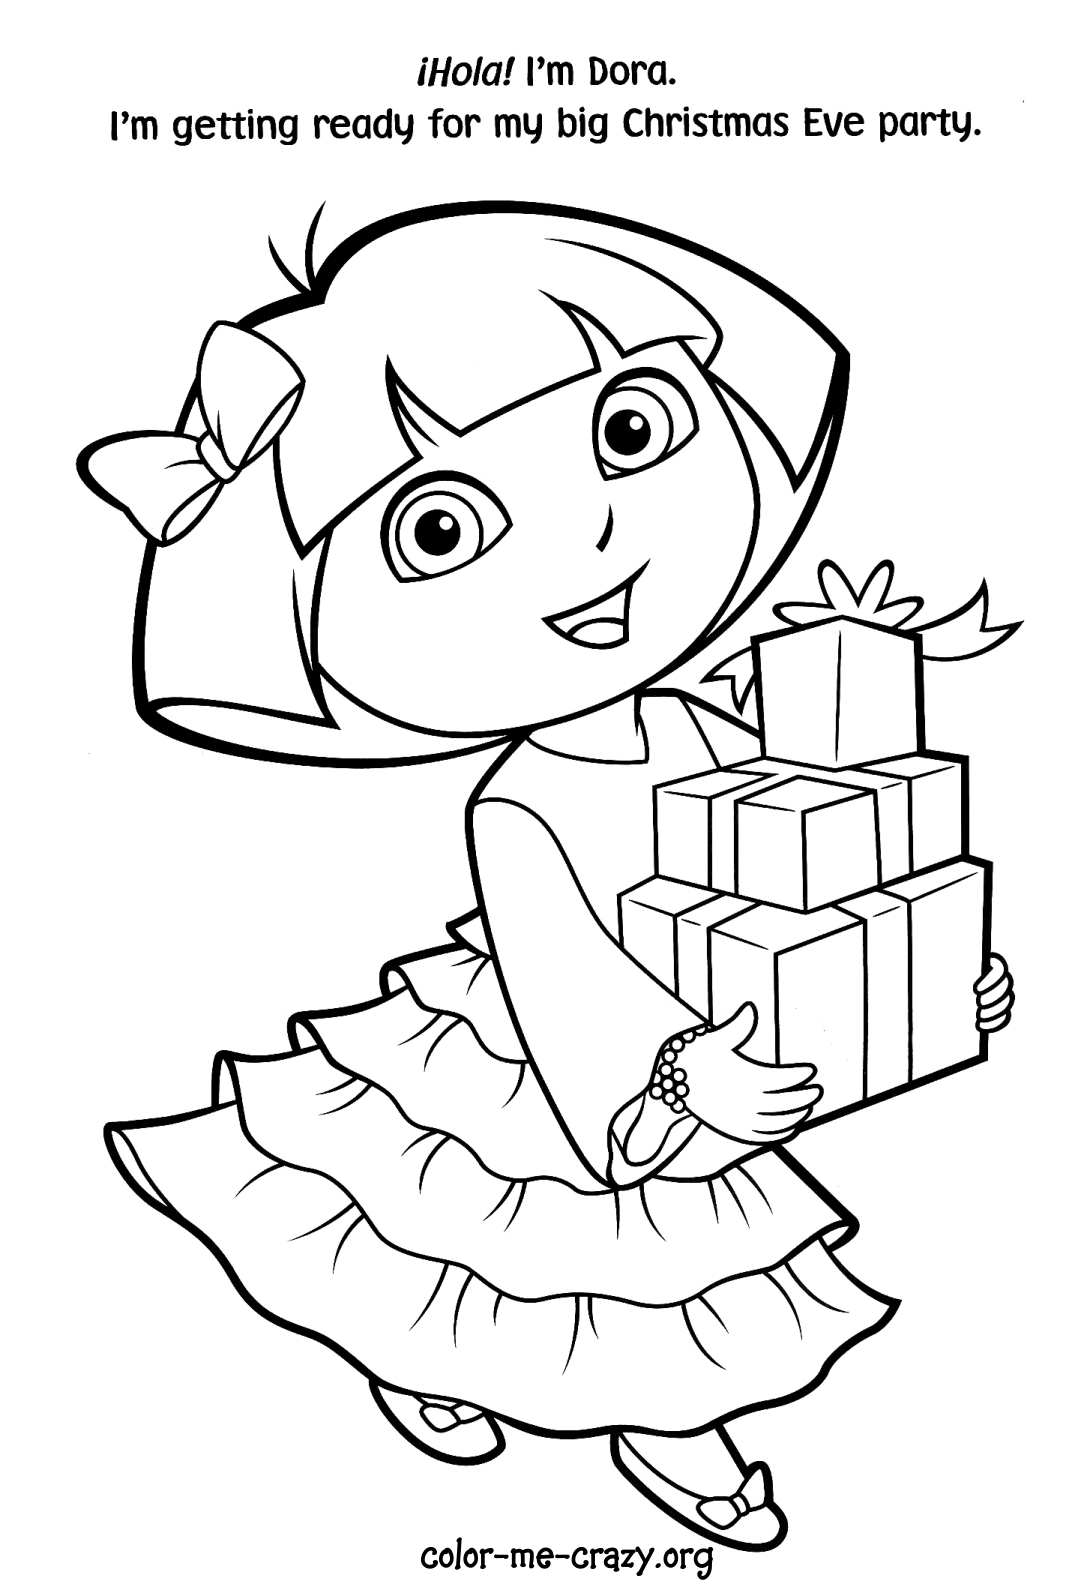 diego christmas coloring pages - photo#38